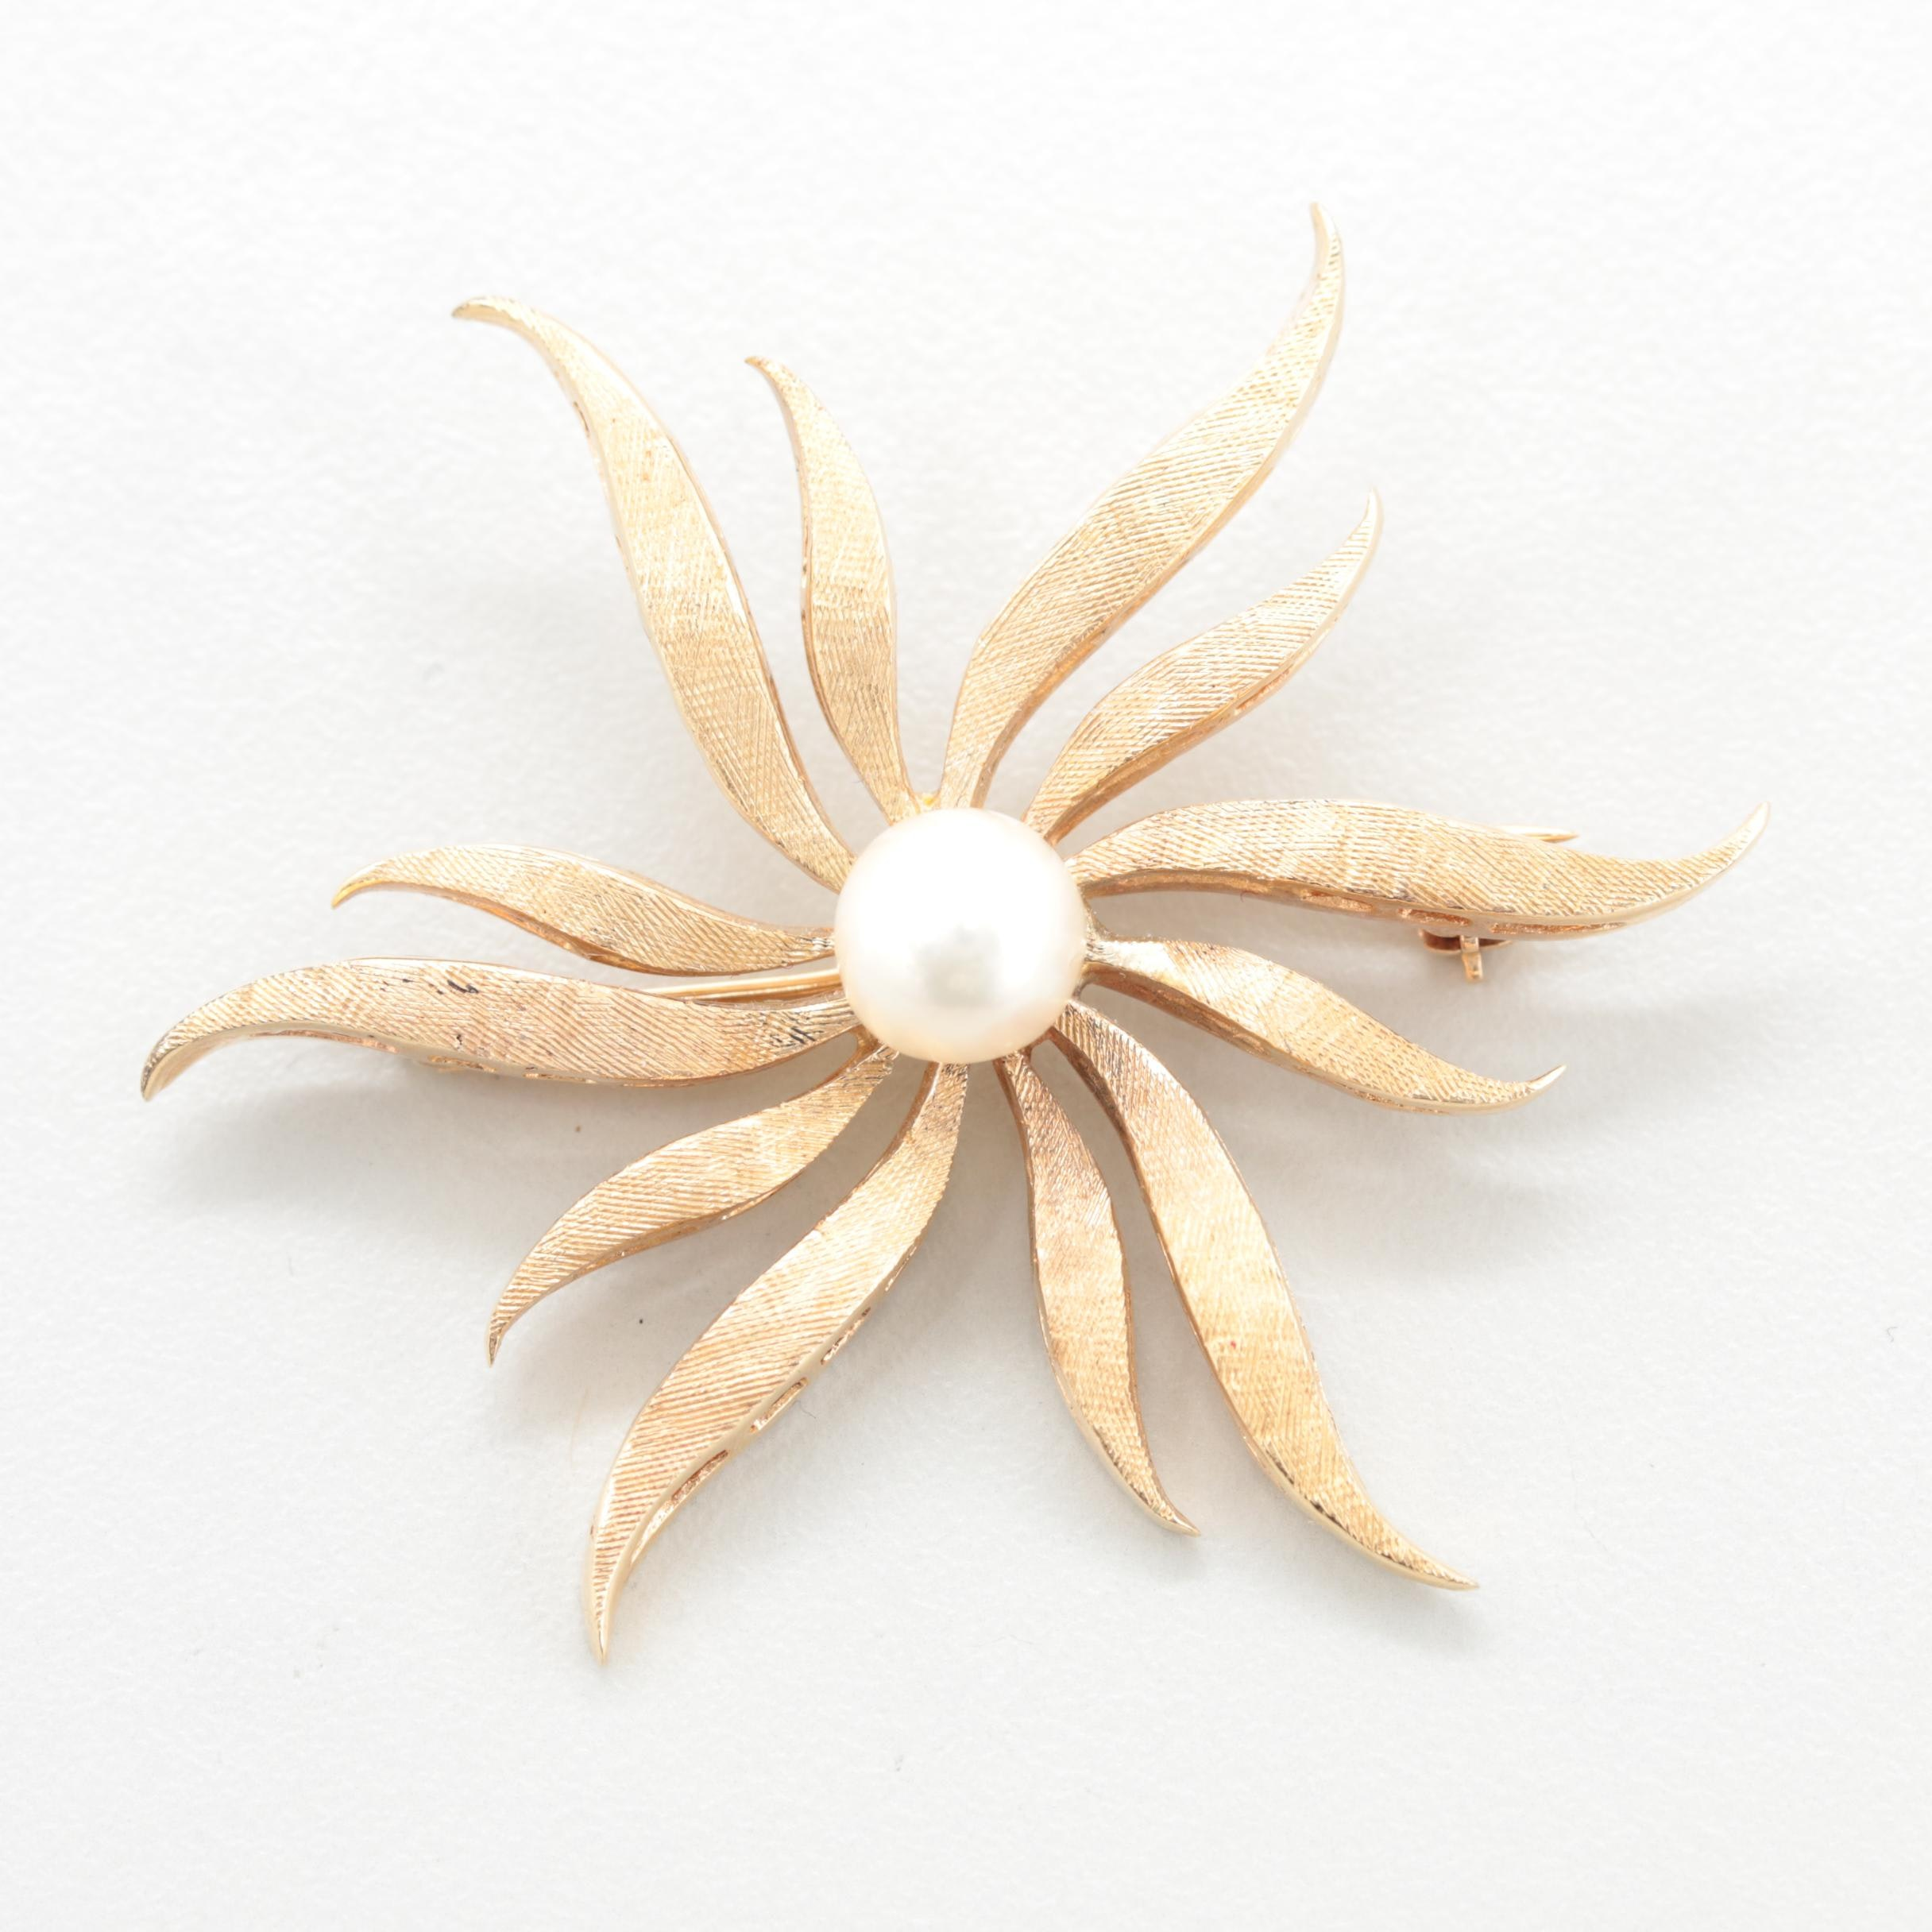 Circa 1950s - 1960s 14K Yellow Gold Cultured Pearl Brooch